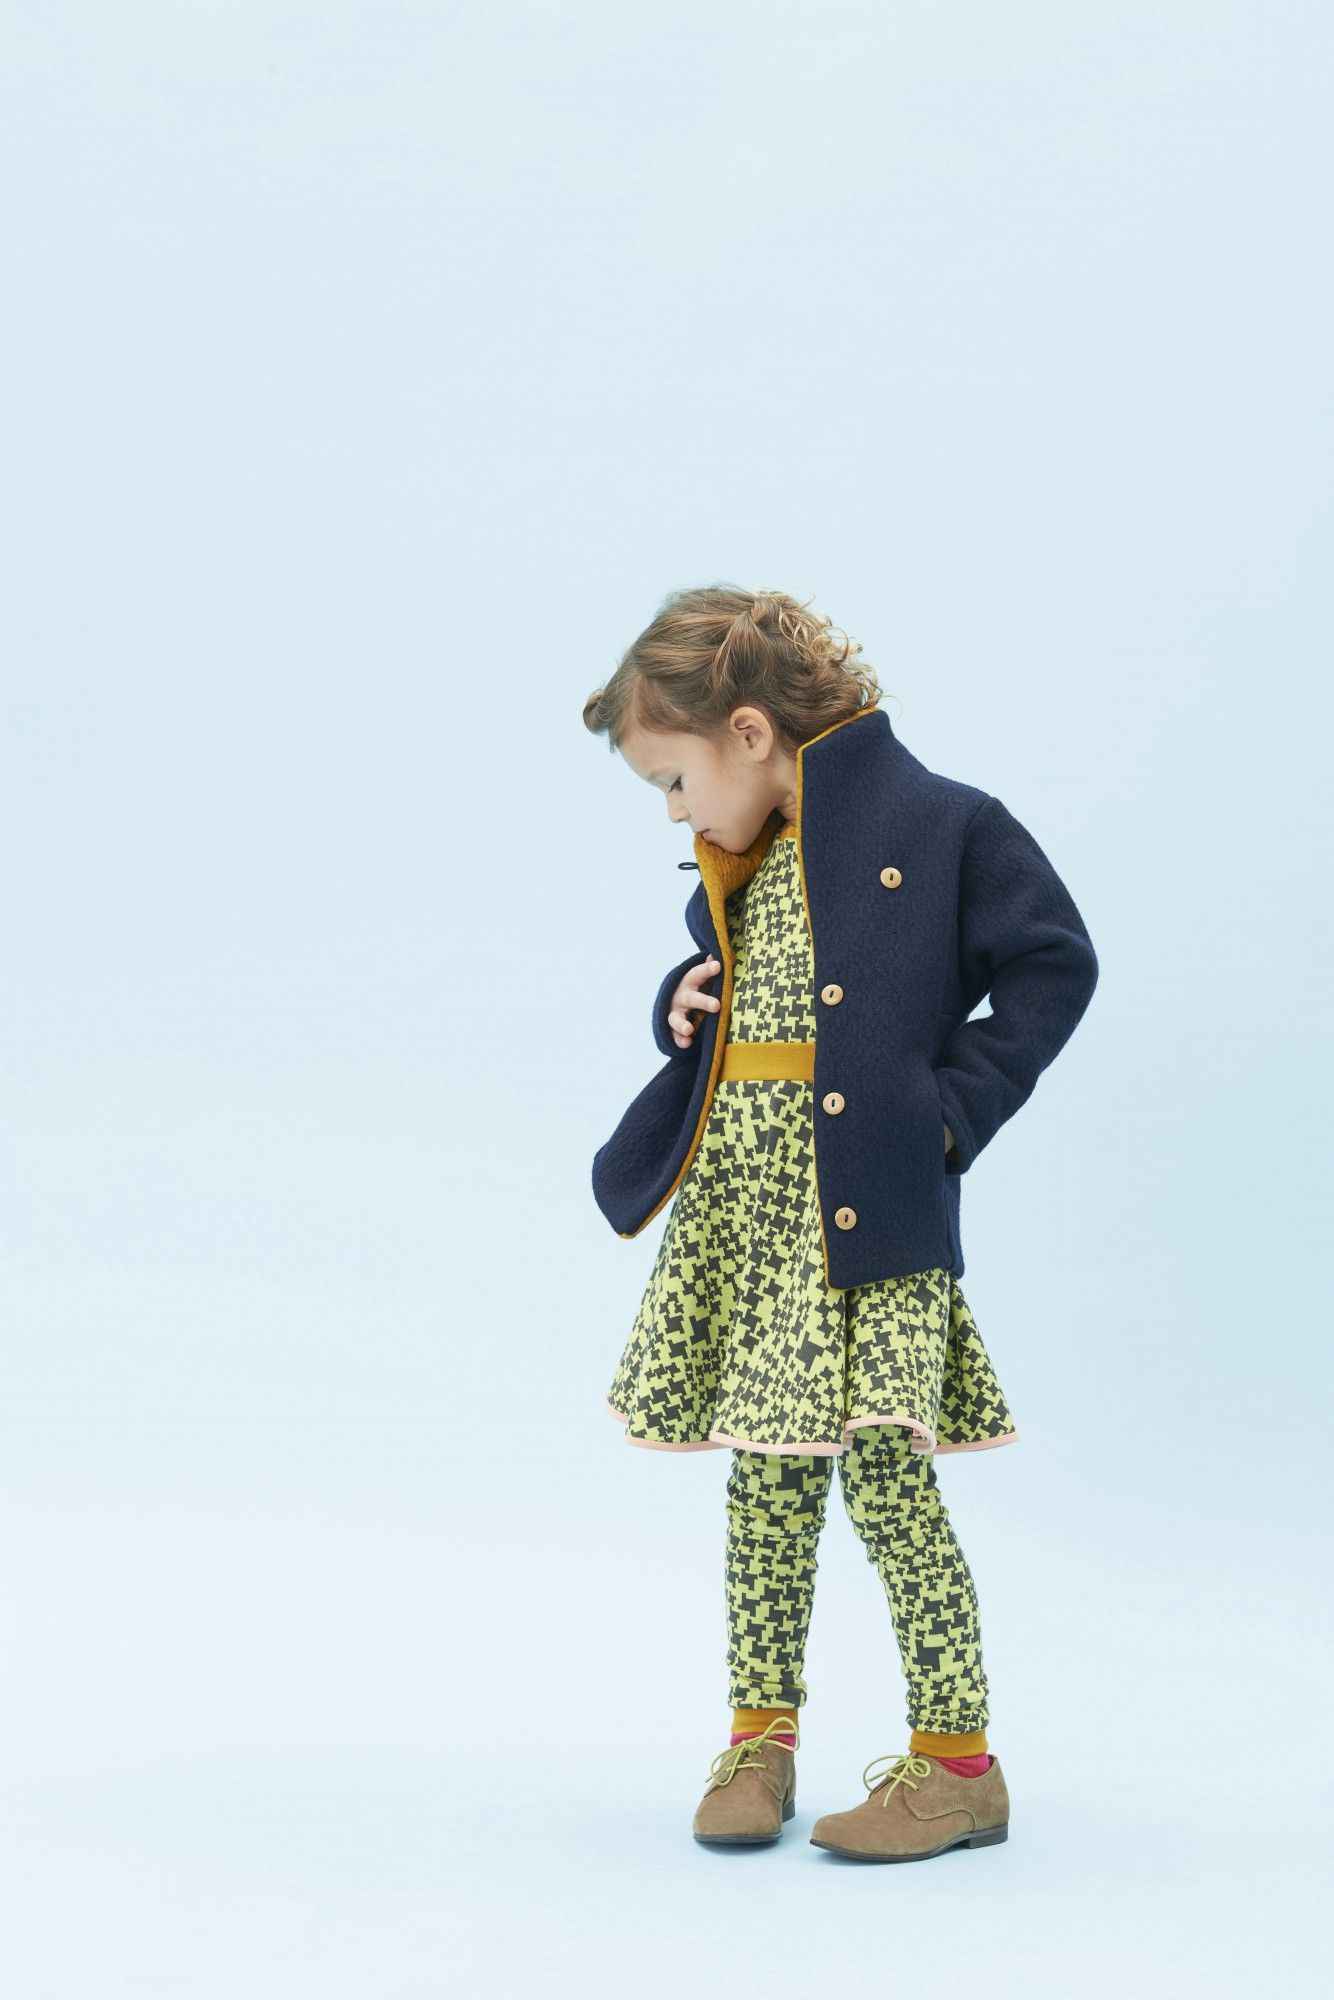 macarons NEW A/W 2015 Collection NOW ONLINE !! FUN & UNIQUE OUTFITS FOR Autumn and Winter !!! SHOP NOW ONLINE www.macarons-shop.com